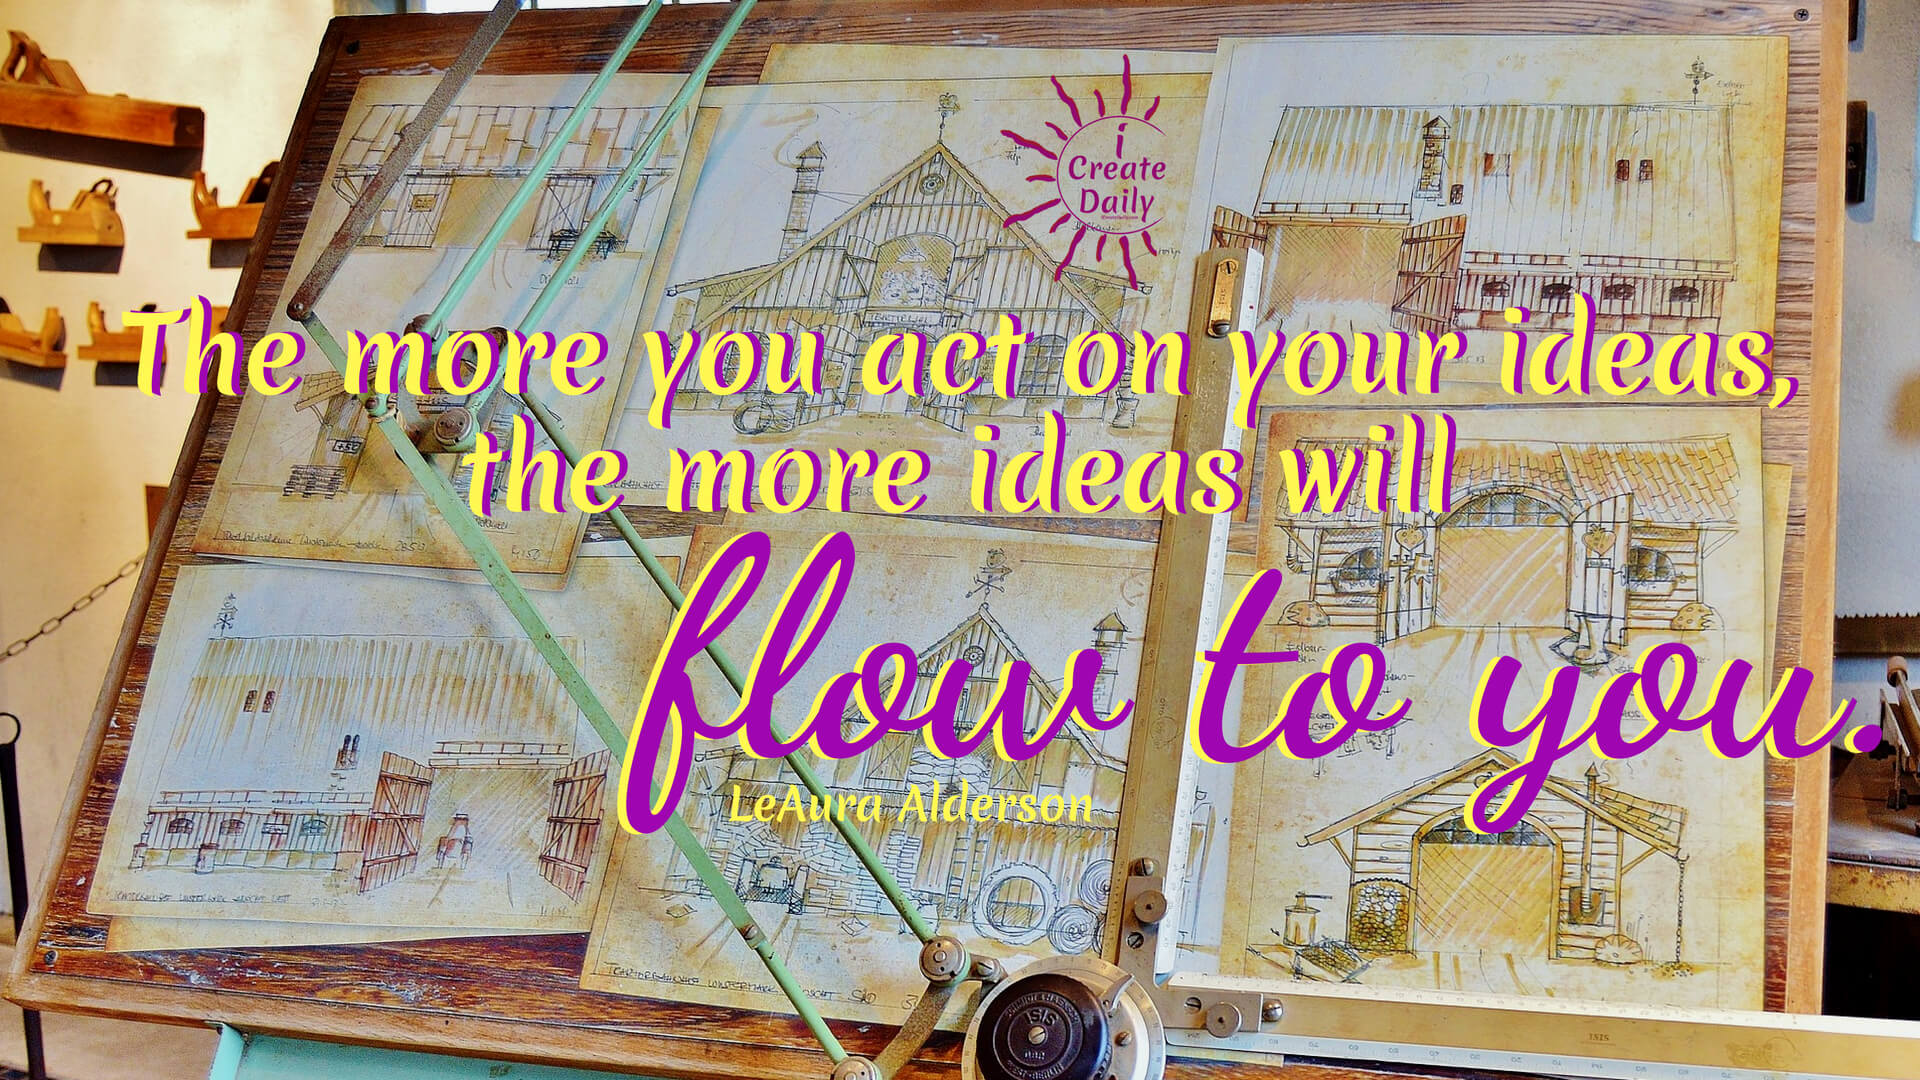 """The more you act on your ideas, the more ideas will flow to you."" ~LeAura Alderson, author, entrepreneur, cofounder-iCreateDaily #lifegoals #Dreams #Motivation #BucketLists #Ideas #Quotes #Money #IWant #Happy #ThingsToDo #Inspiration #Thoughts #Travel #Adventure #Fun #Friends #Awesome #People #Families #Heavens #RoadTrips #Wanderlust #Mottos #icreatedaily"